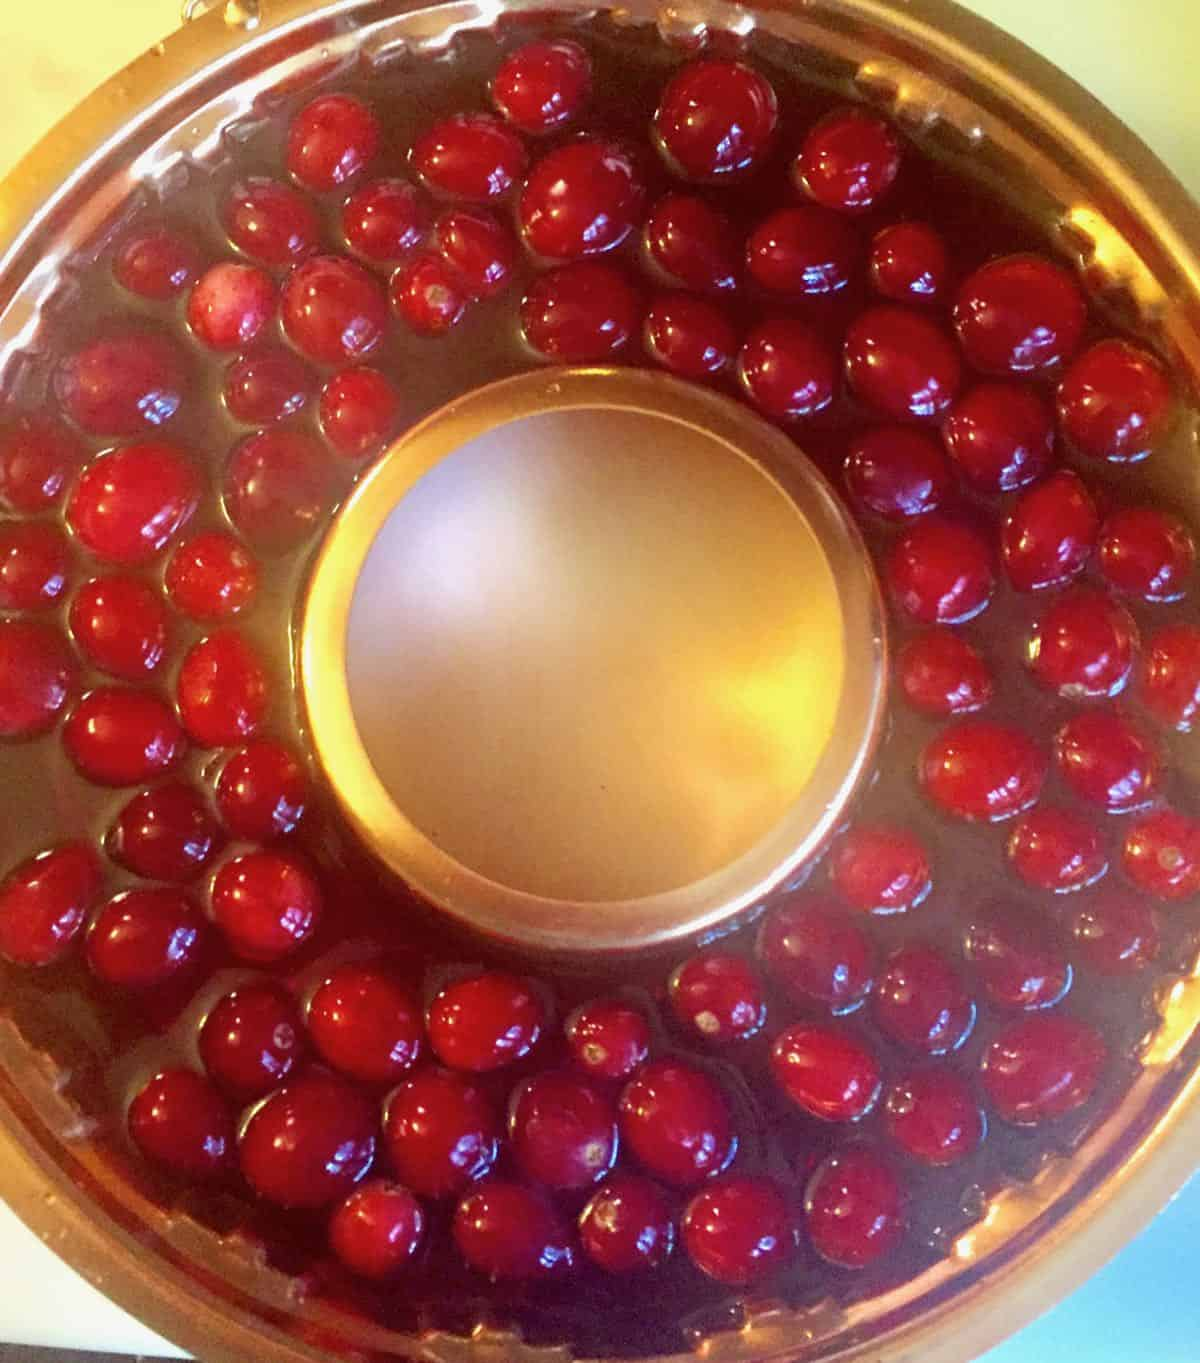 An ice ring with cranberries and cranberry juice.